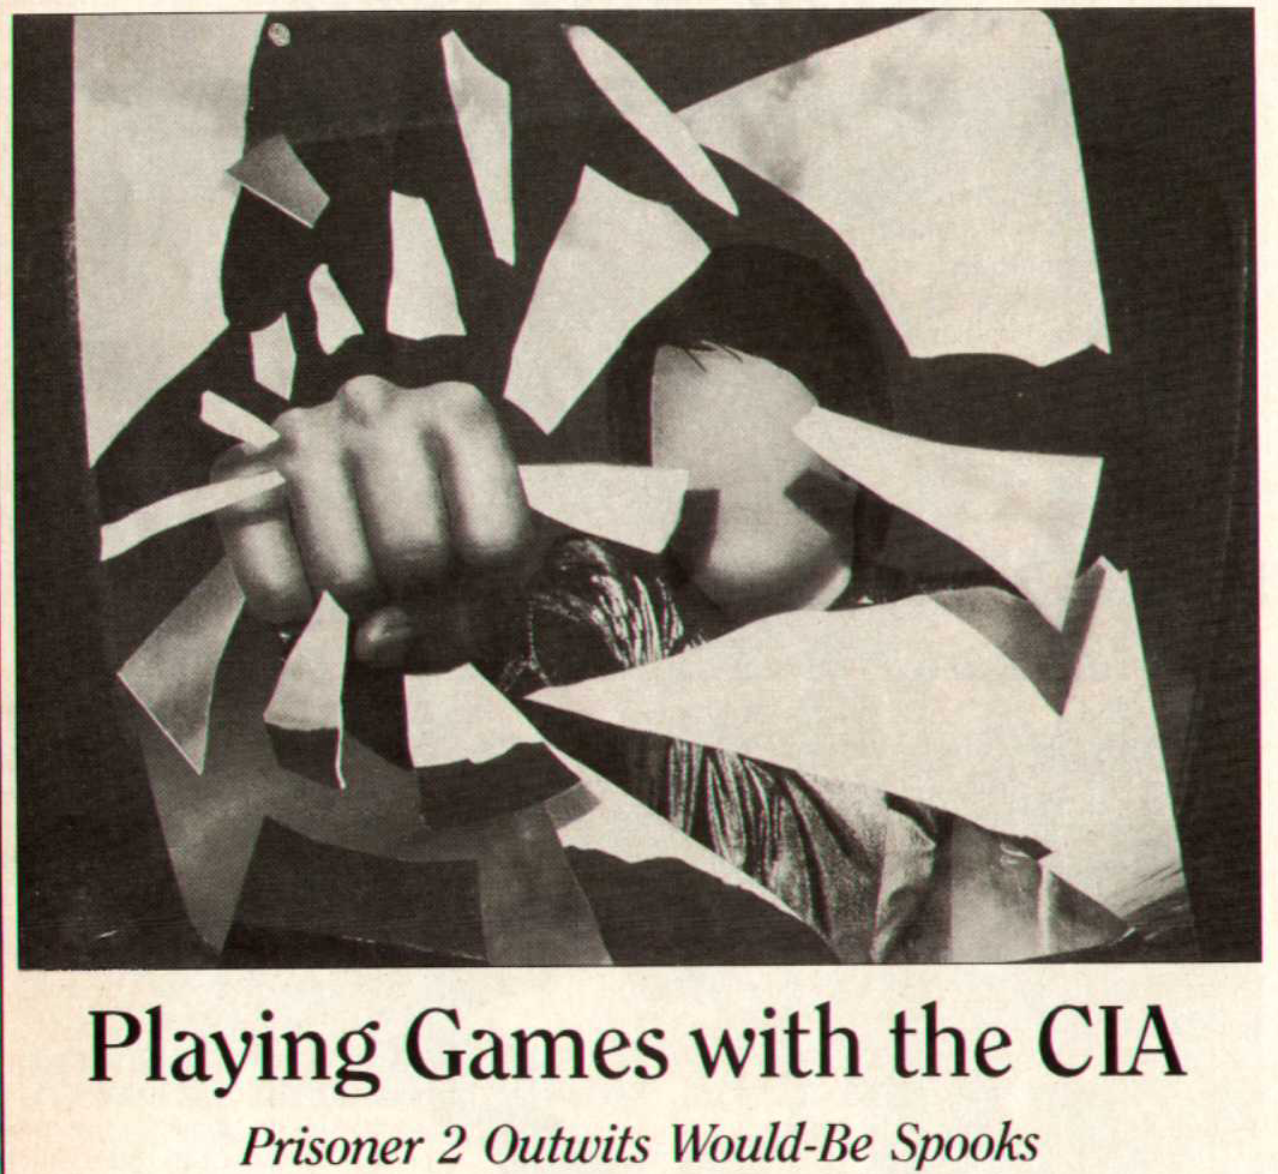 Atari Power scan of the 'Playing Games with the CIA' article